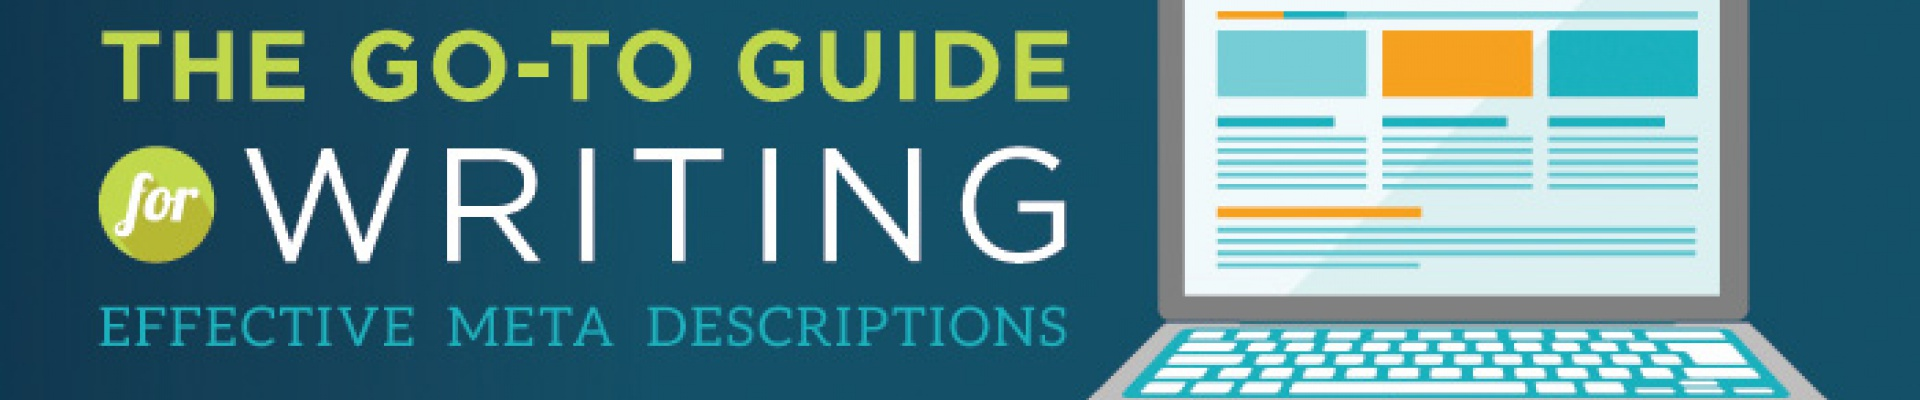 The Go-To Guide for Writing Effective Meta Descriptions